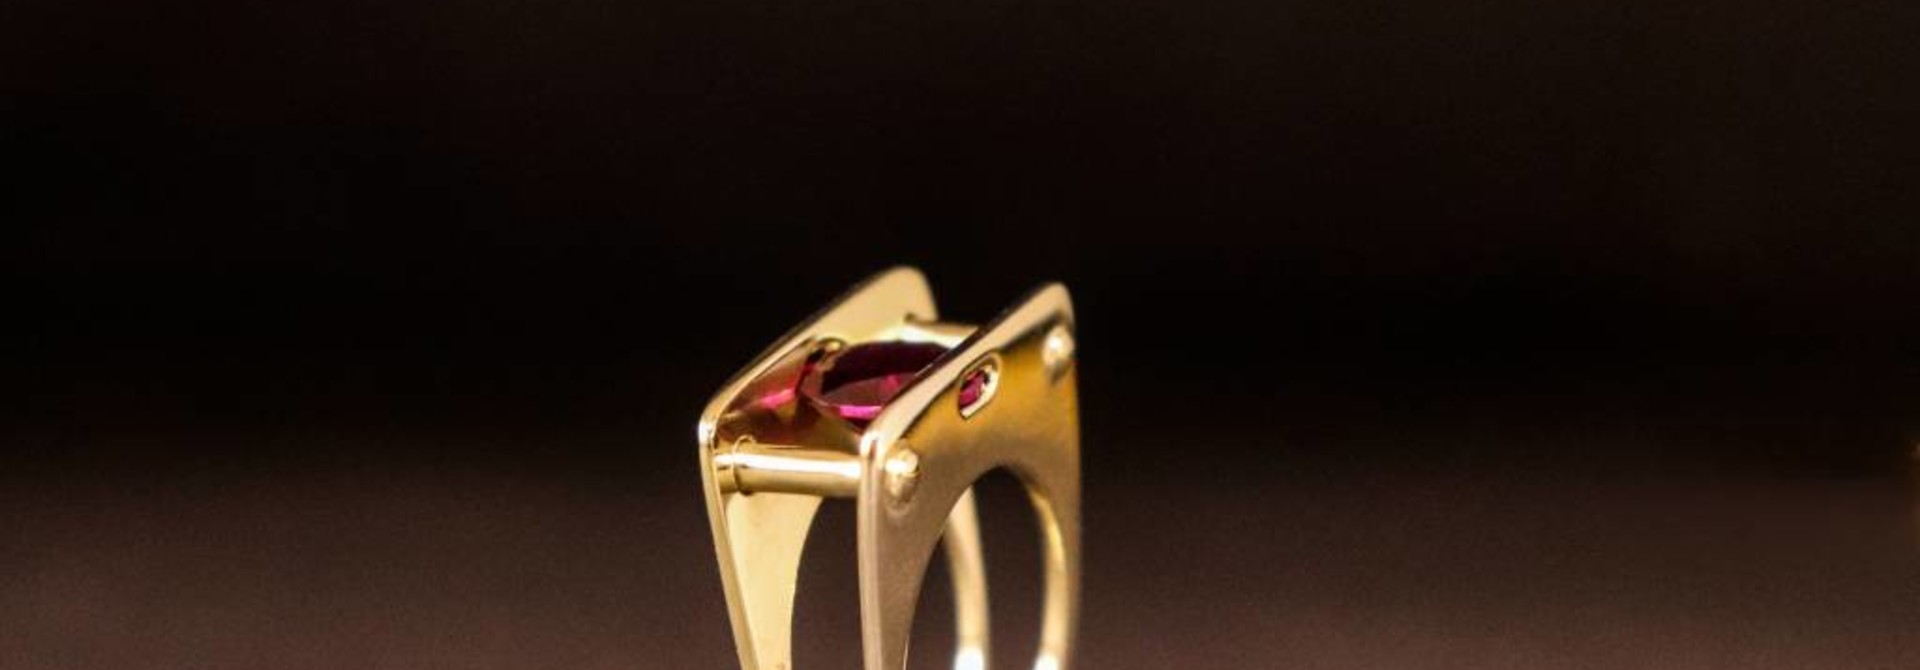 Ring STIJL-breed, goud